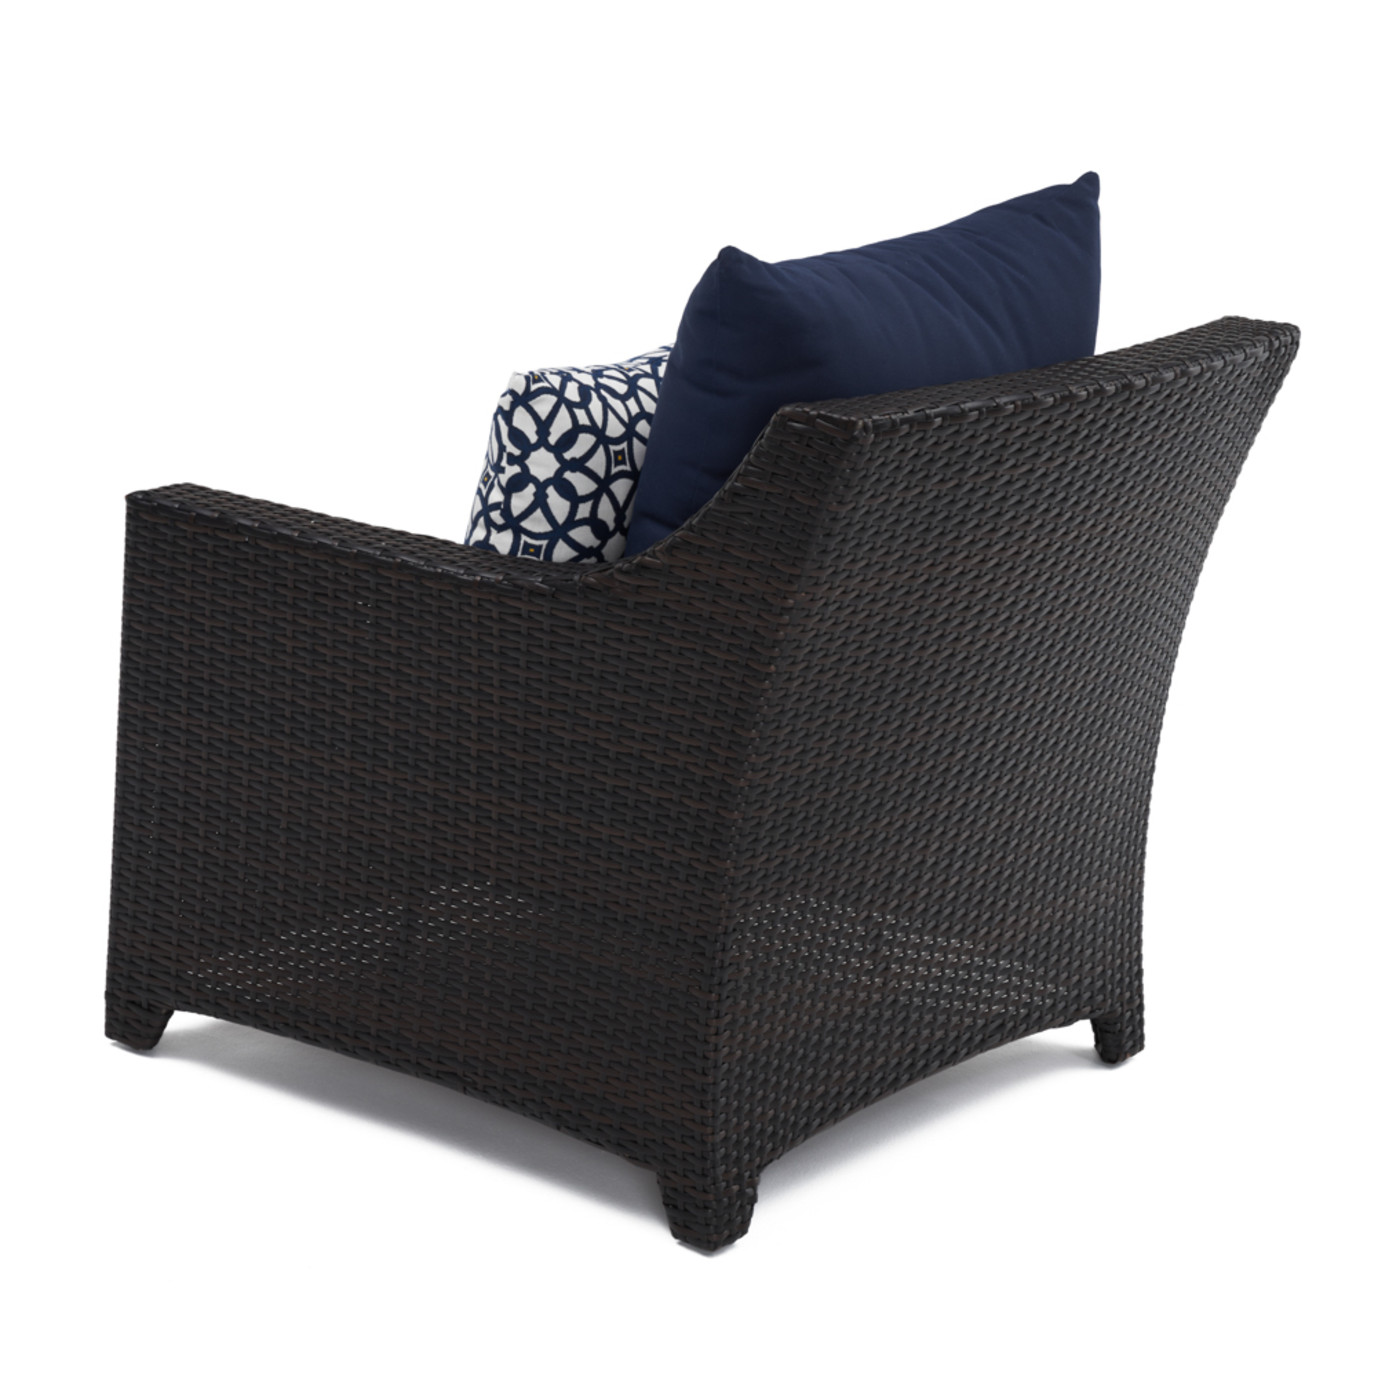 Deco™ Club Chairs - Navy Blue